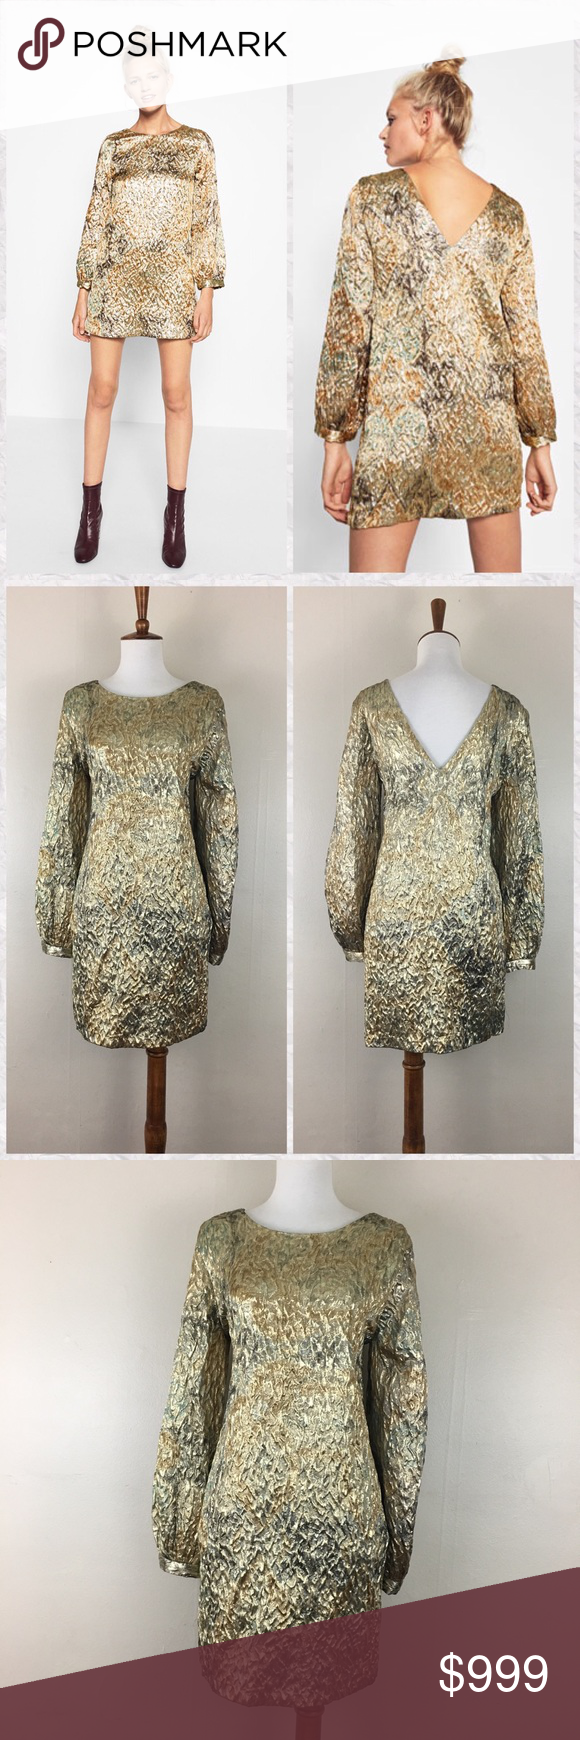 Zara gold metallic jacquard long sleeve mini dress nwt my posh